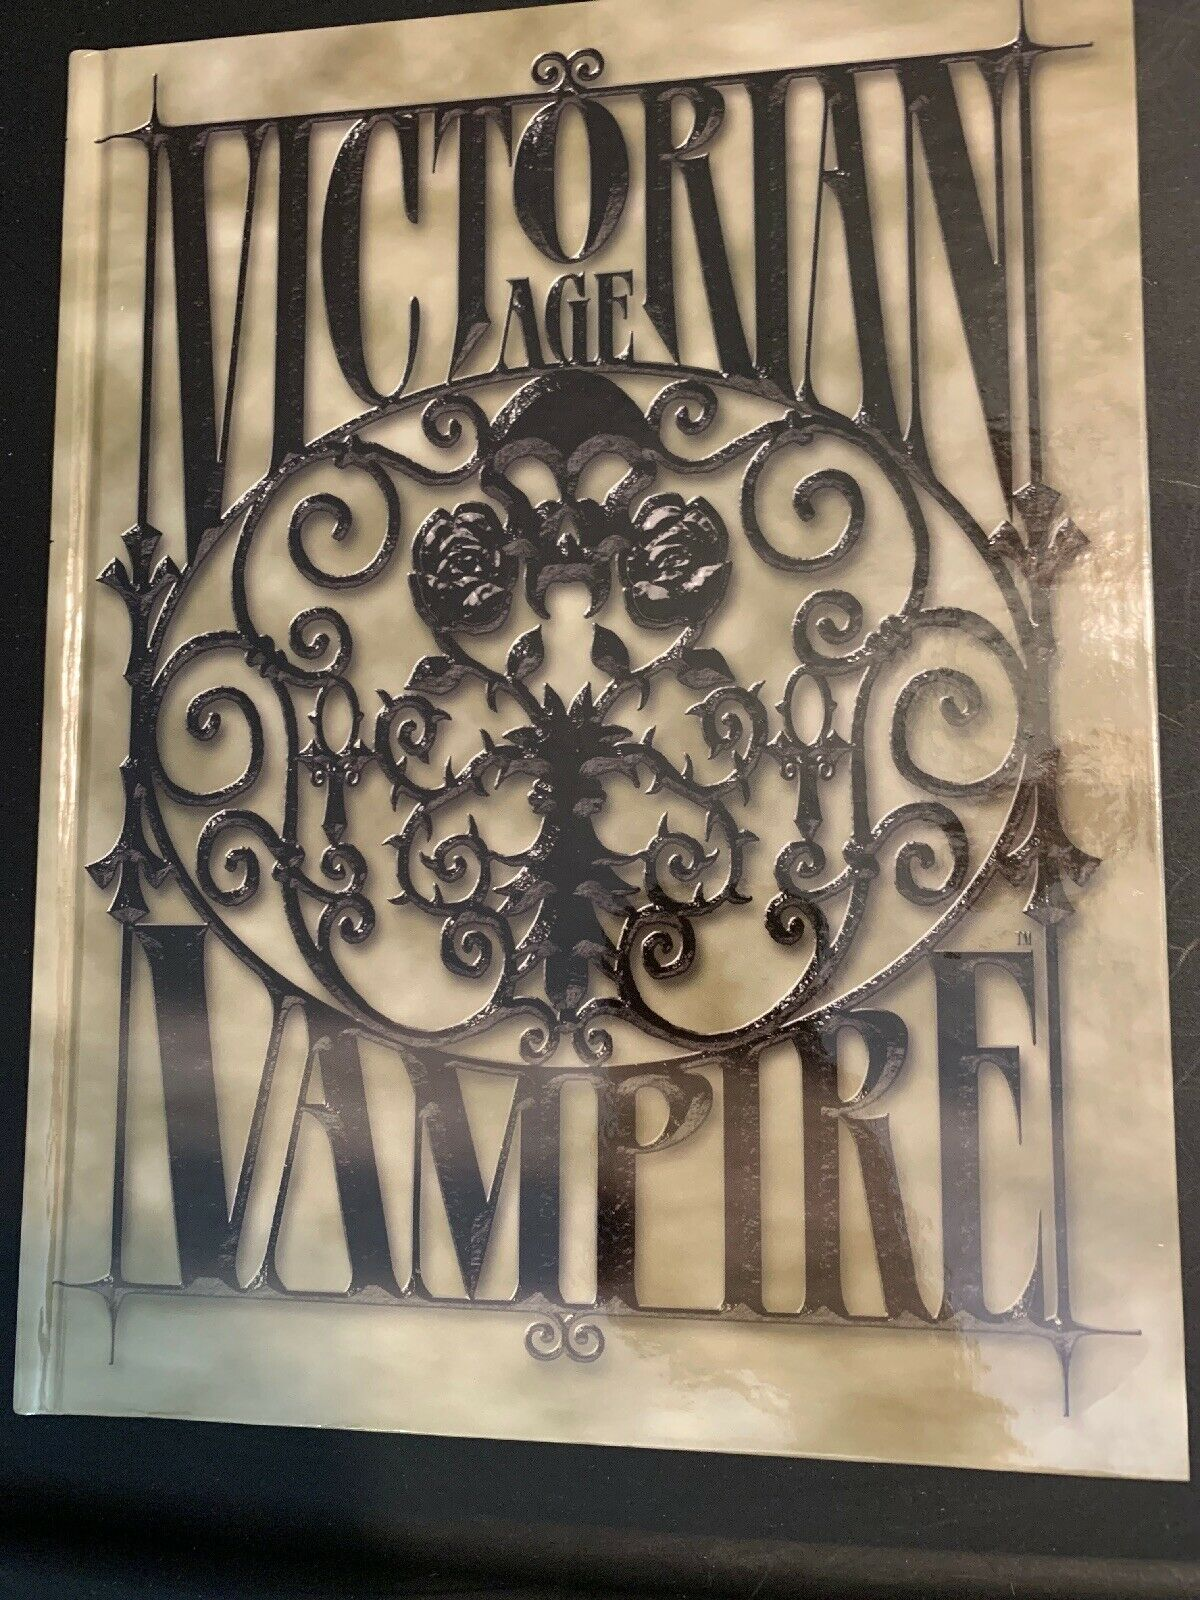 Historical Book of the Vampire Age of Victoria ww 2470 2470 2470 blancoo Wolf d8d